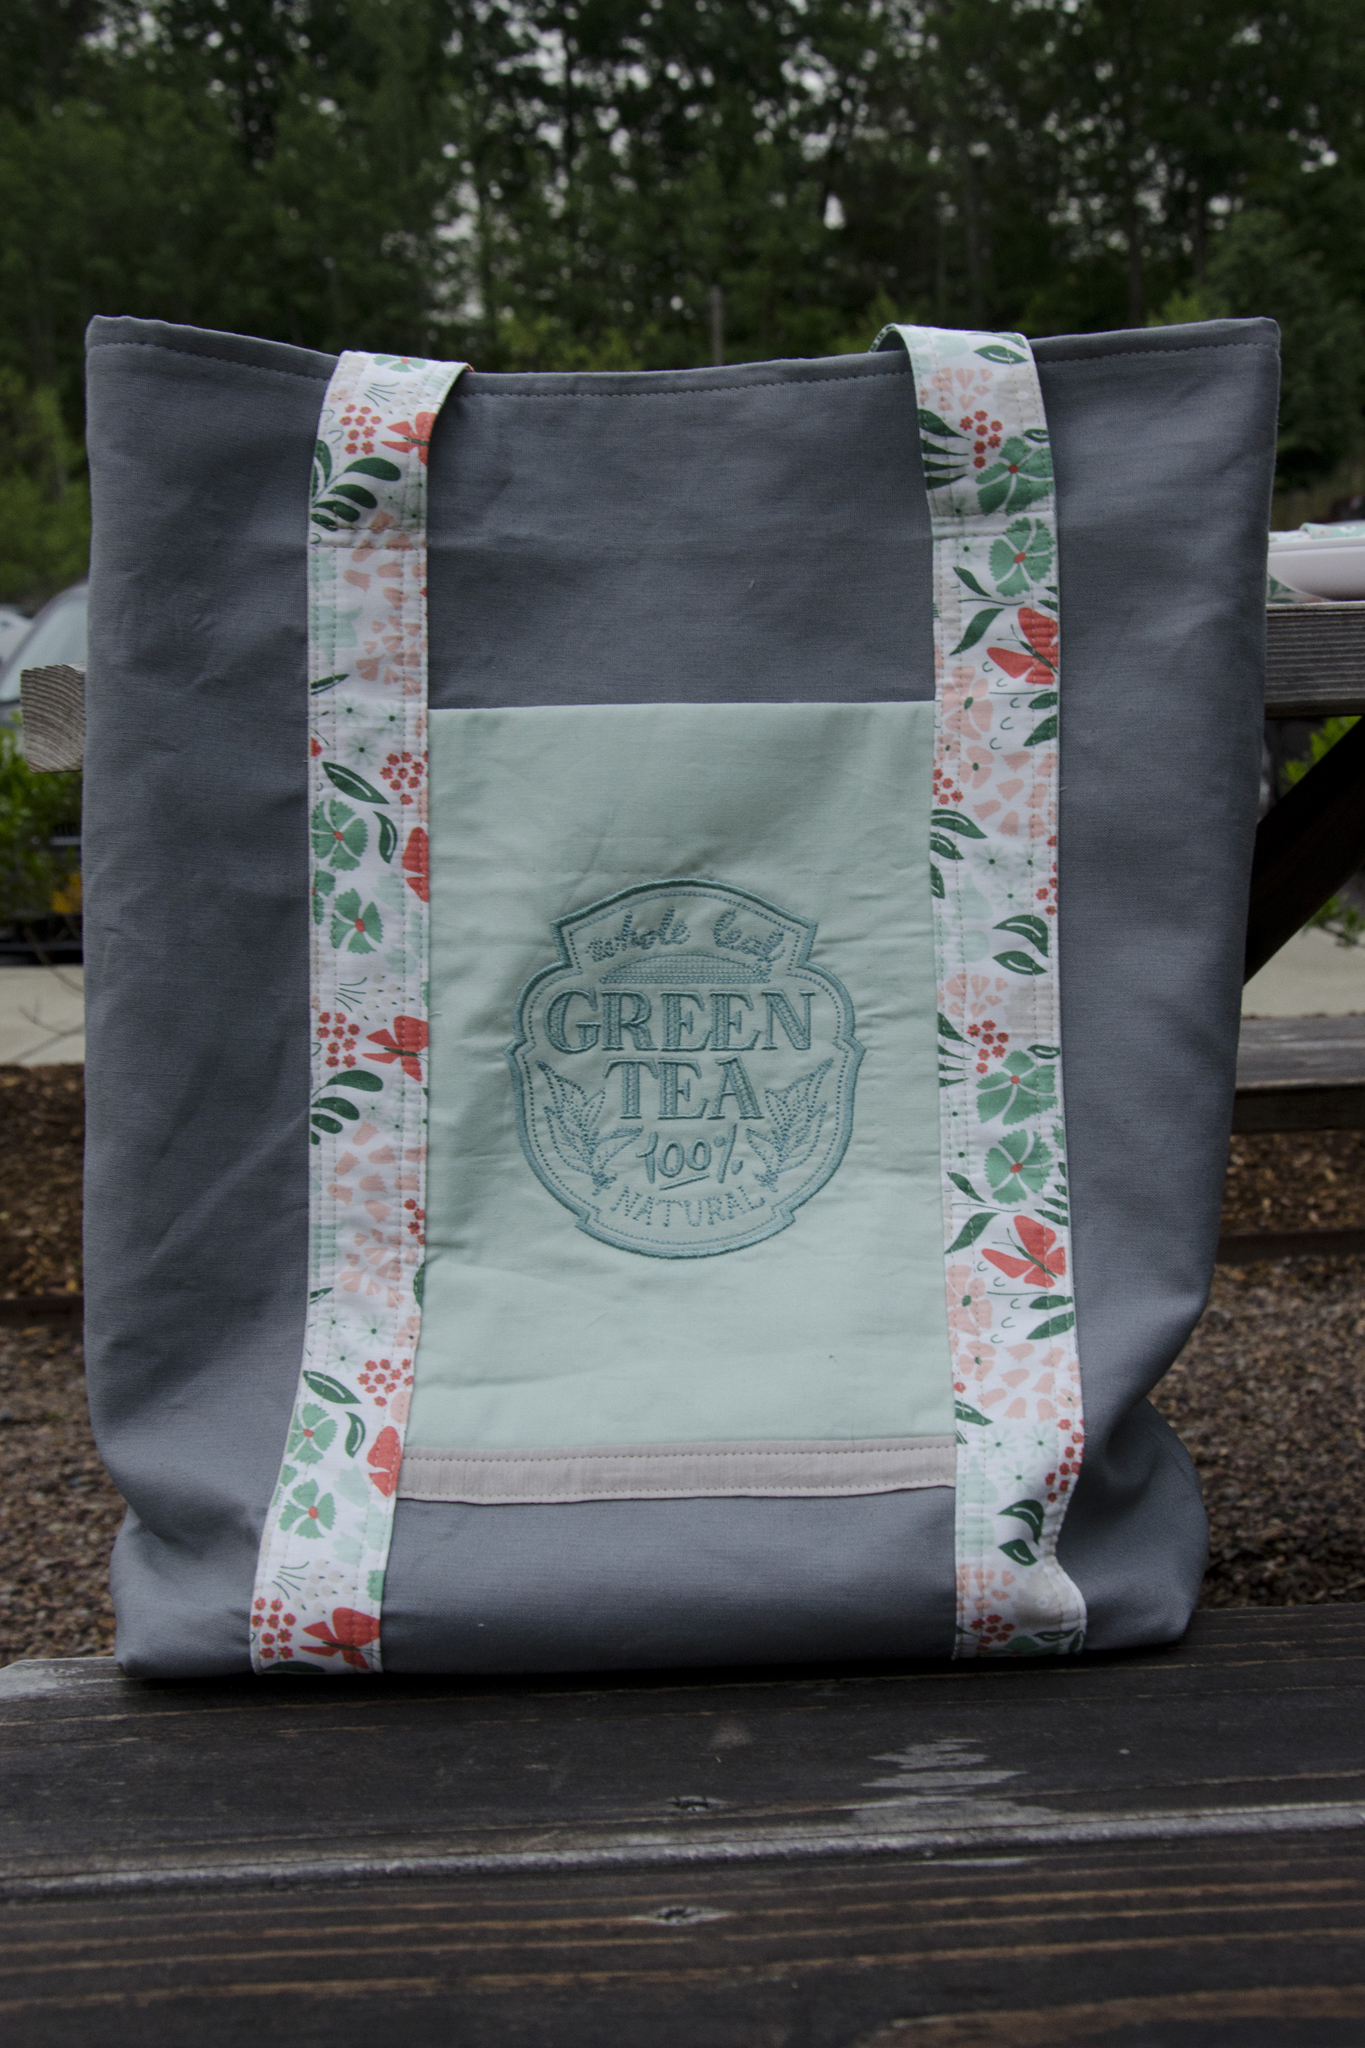 Tea in the Park Bag